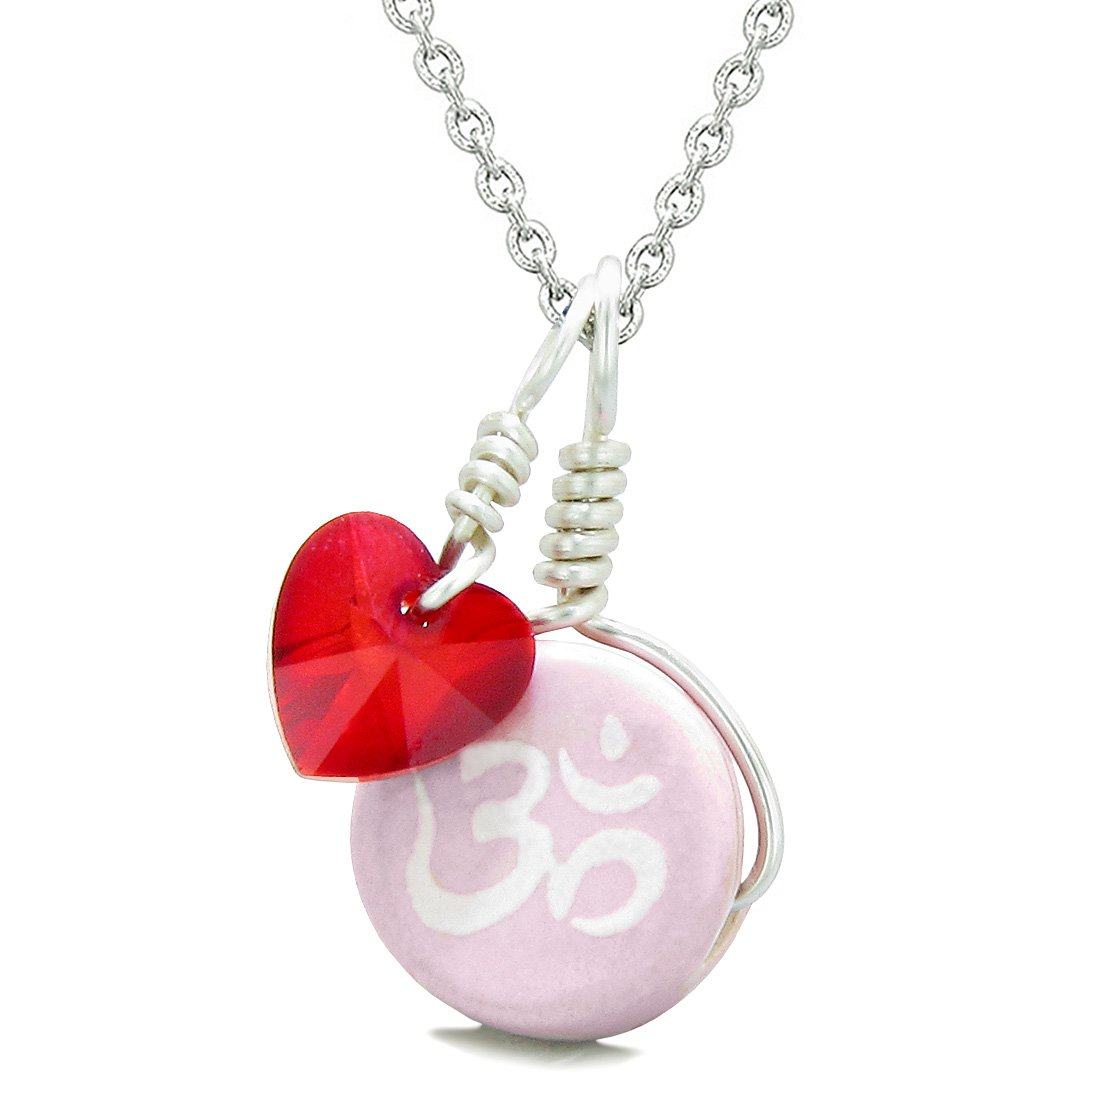 Handcrafted Cute Ceramic Lucky Charm Pink OM Ohm Tibetan Red Heart Amulet Pendant 18 Inch Necklace